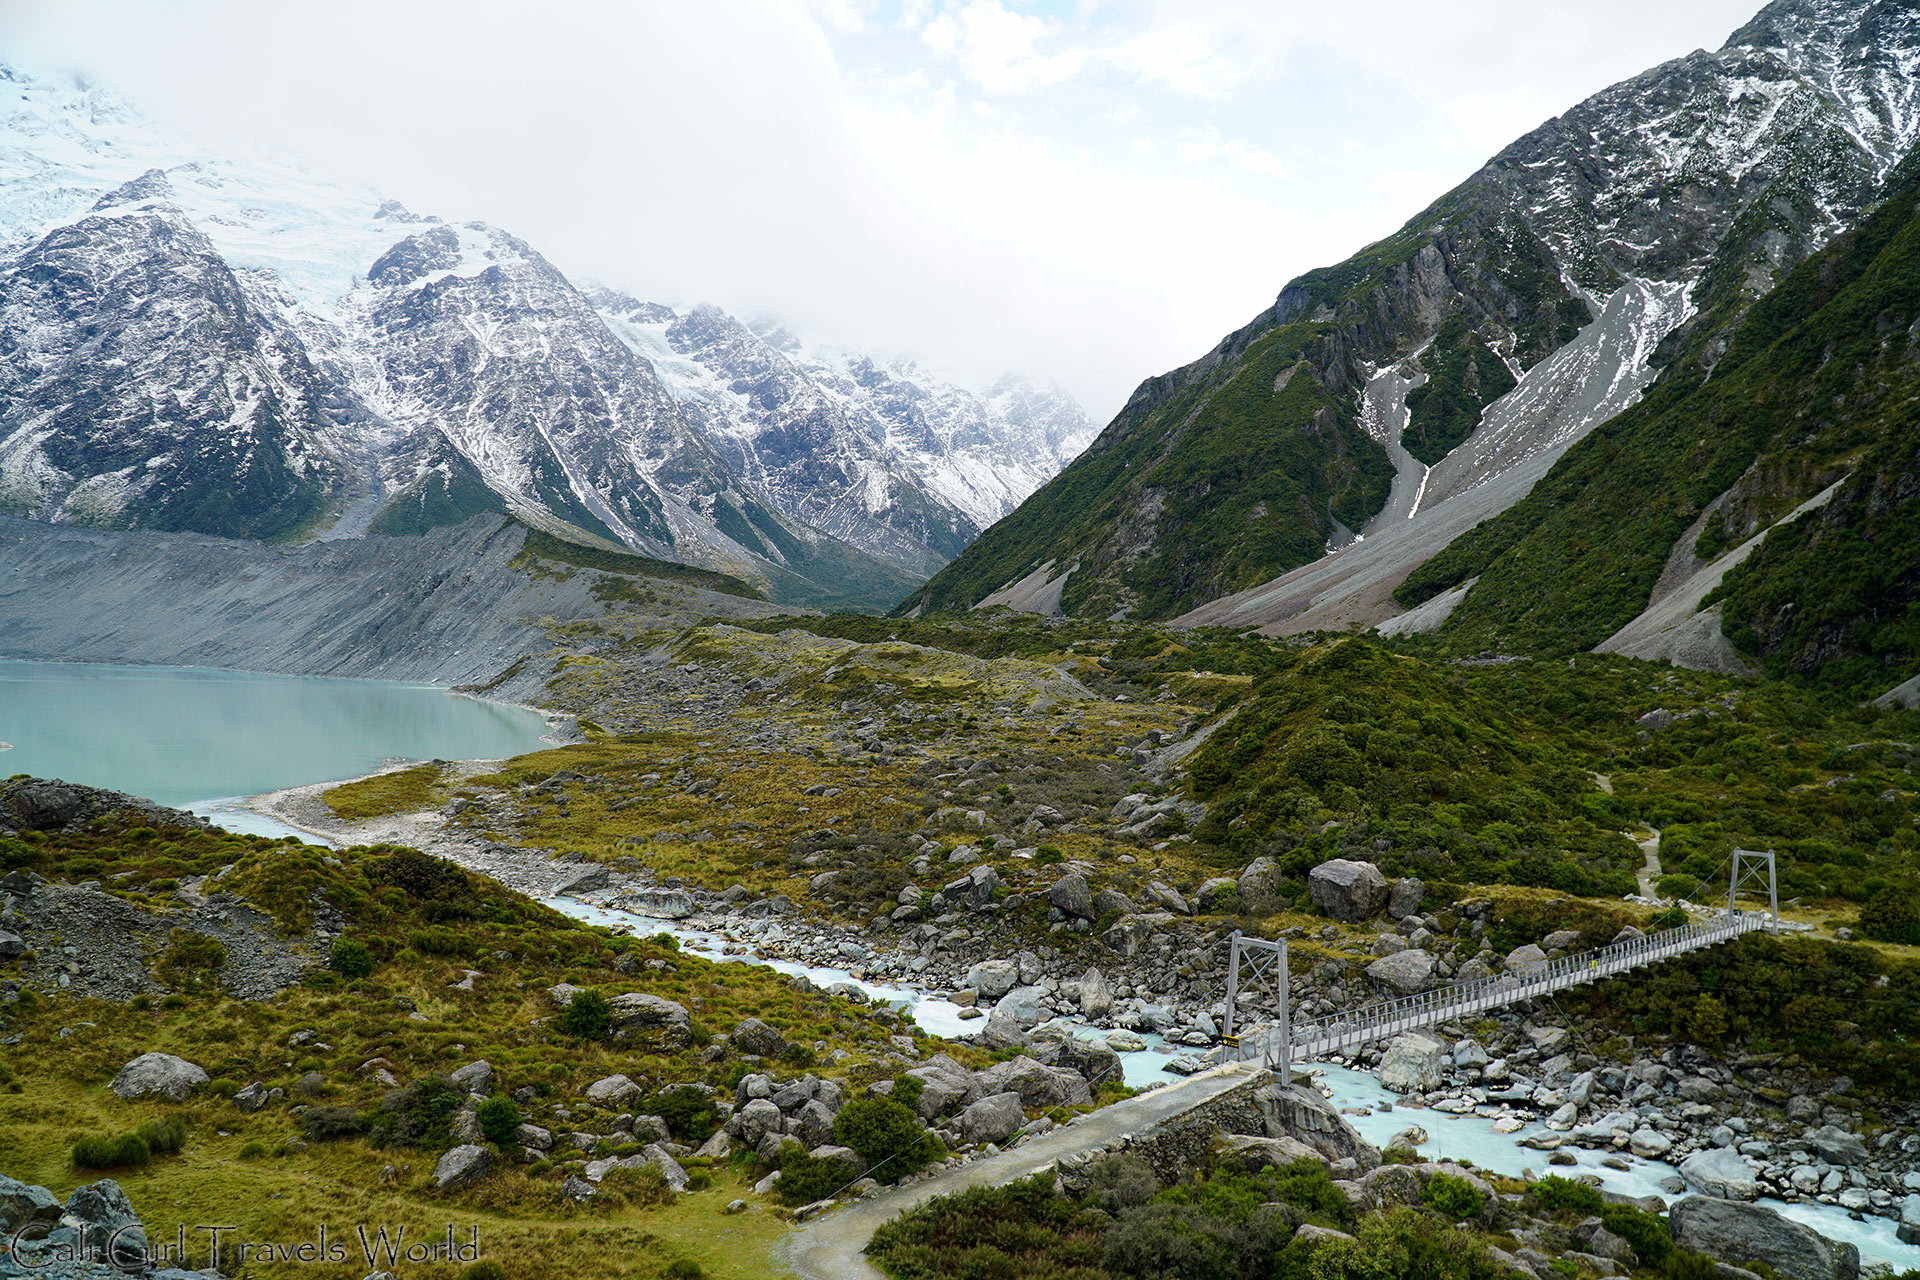 A view of the Hooker Valley Track in Mount Cook, Canterbury, South Island, New Zealand.